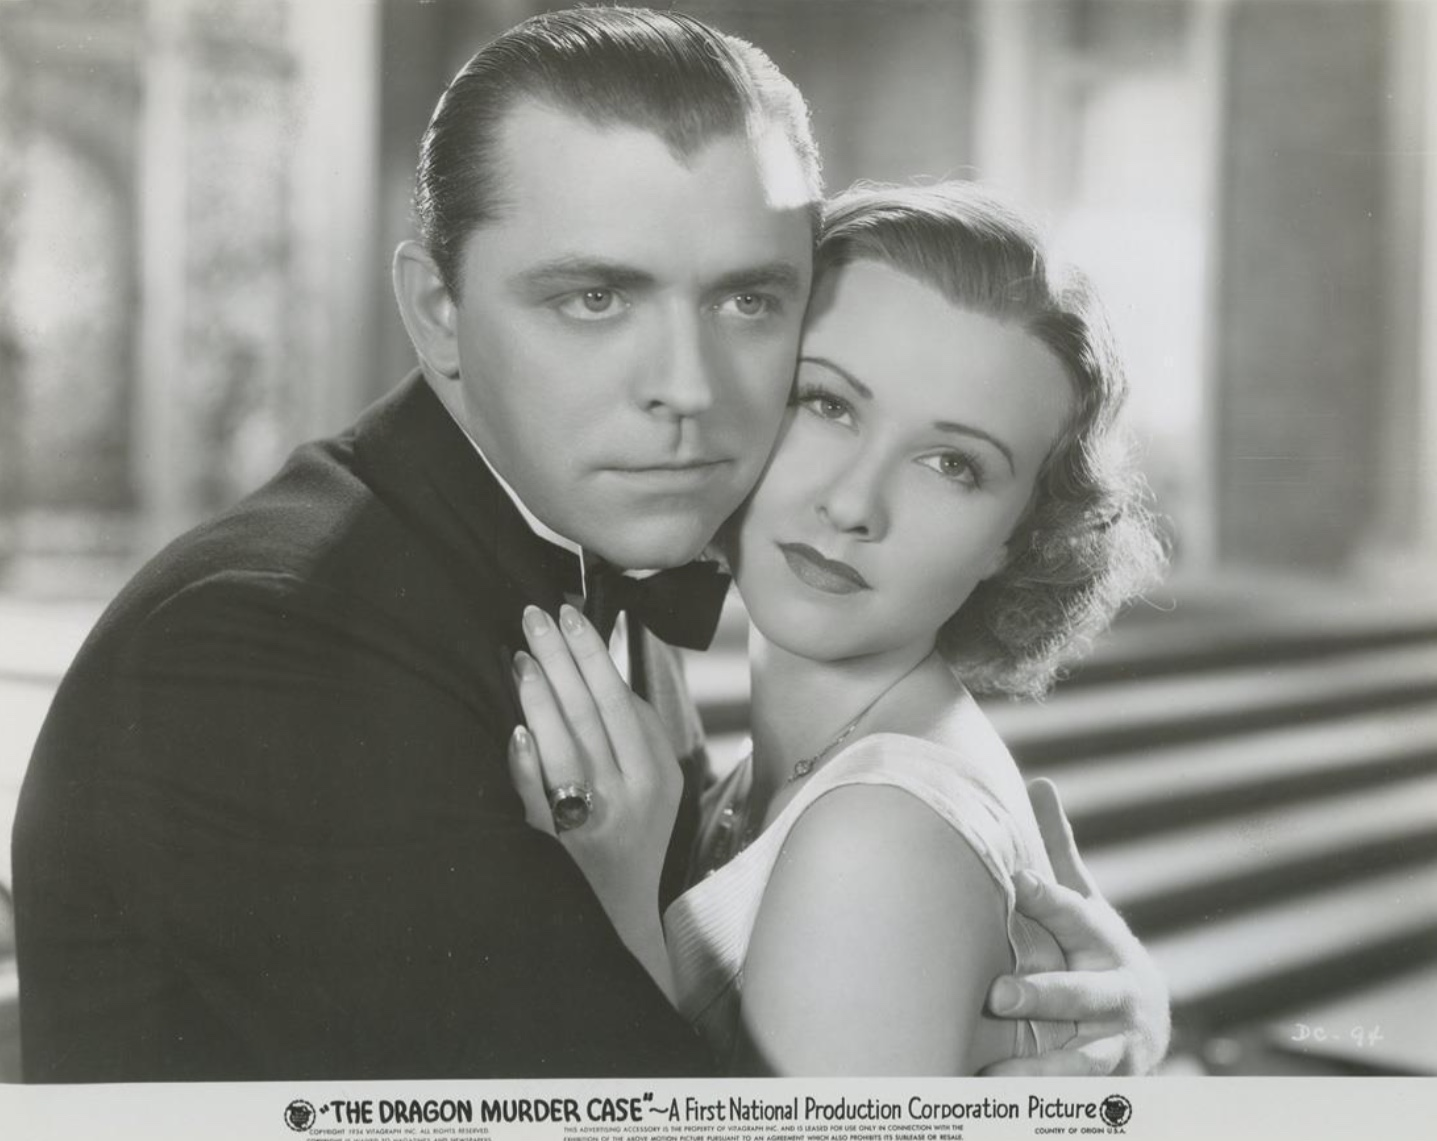 Margaret Lindsay and Lyle Talbot in The Dragon Murder Case (1934)